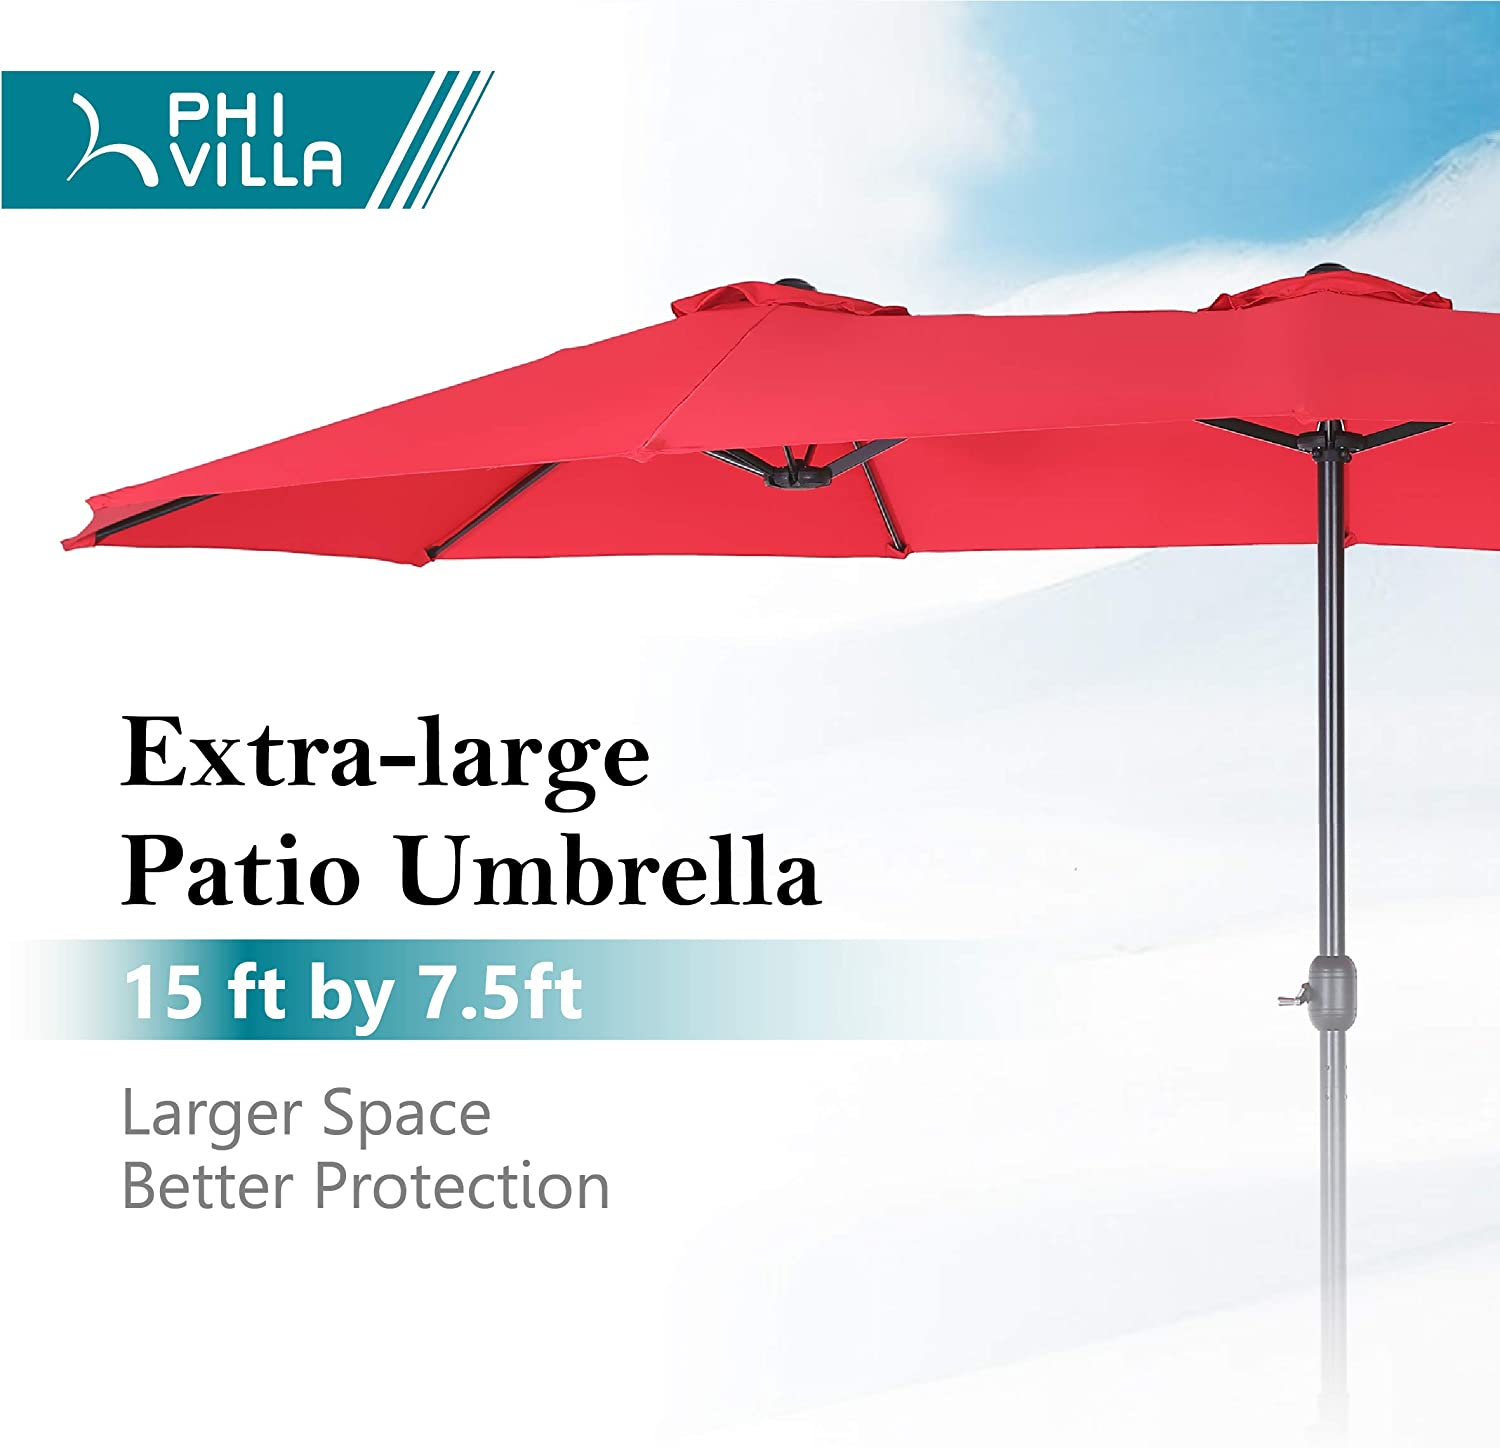 PHI VILLA 15ft Double-Sided Extra Large Patio Umbrella Base Included Outdoor Twin Umbrella Red